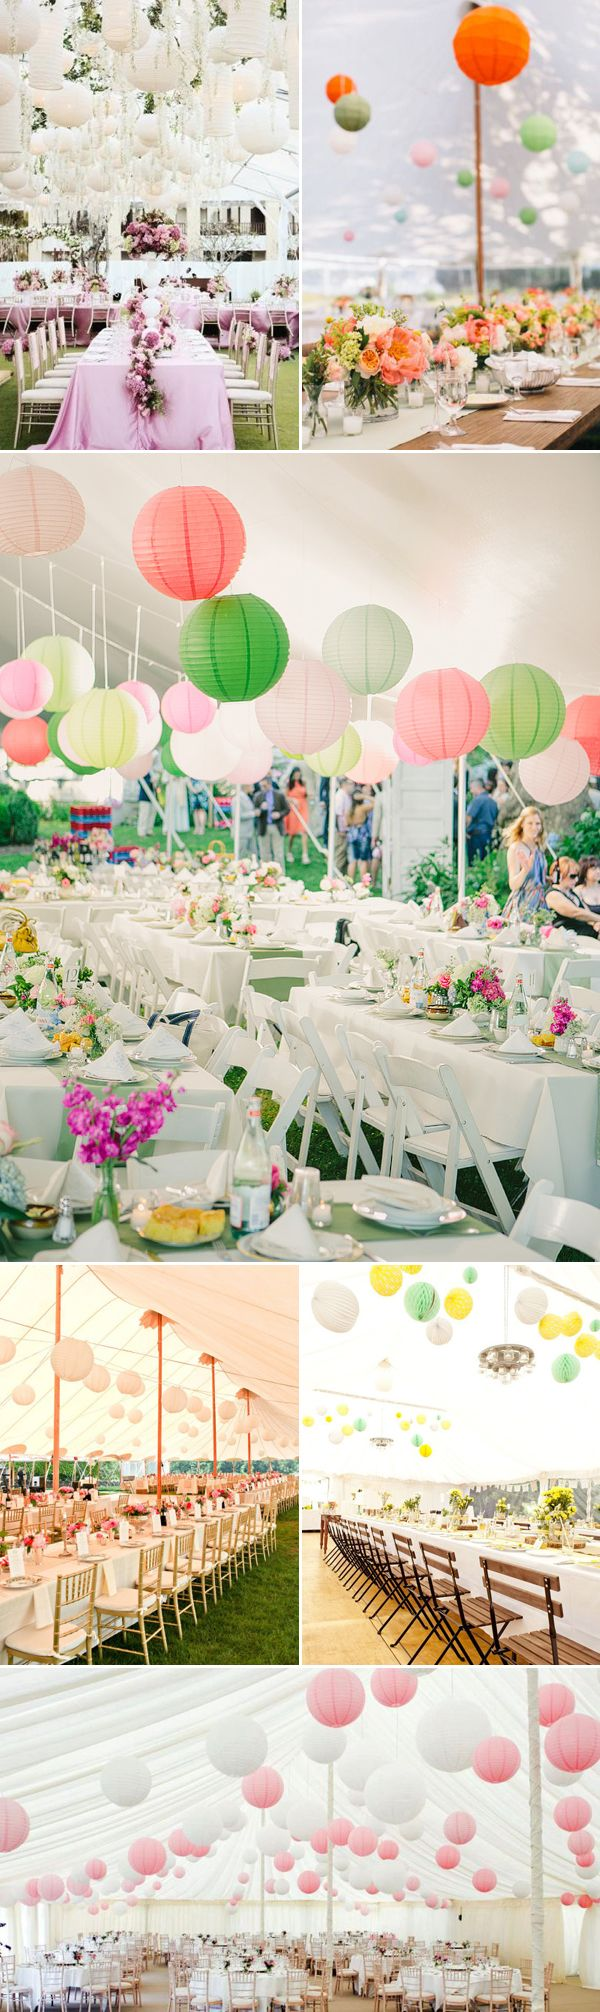 40 Beautiful Ways to Decorate Your Wedding Tent - Lanterns